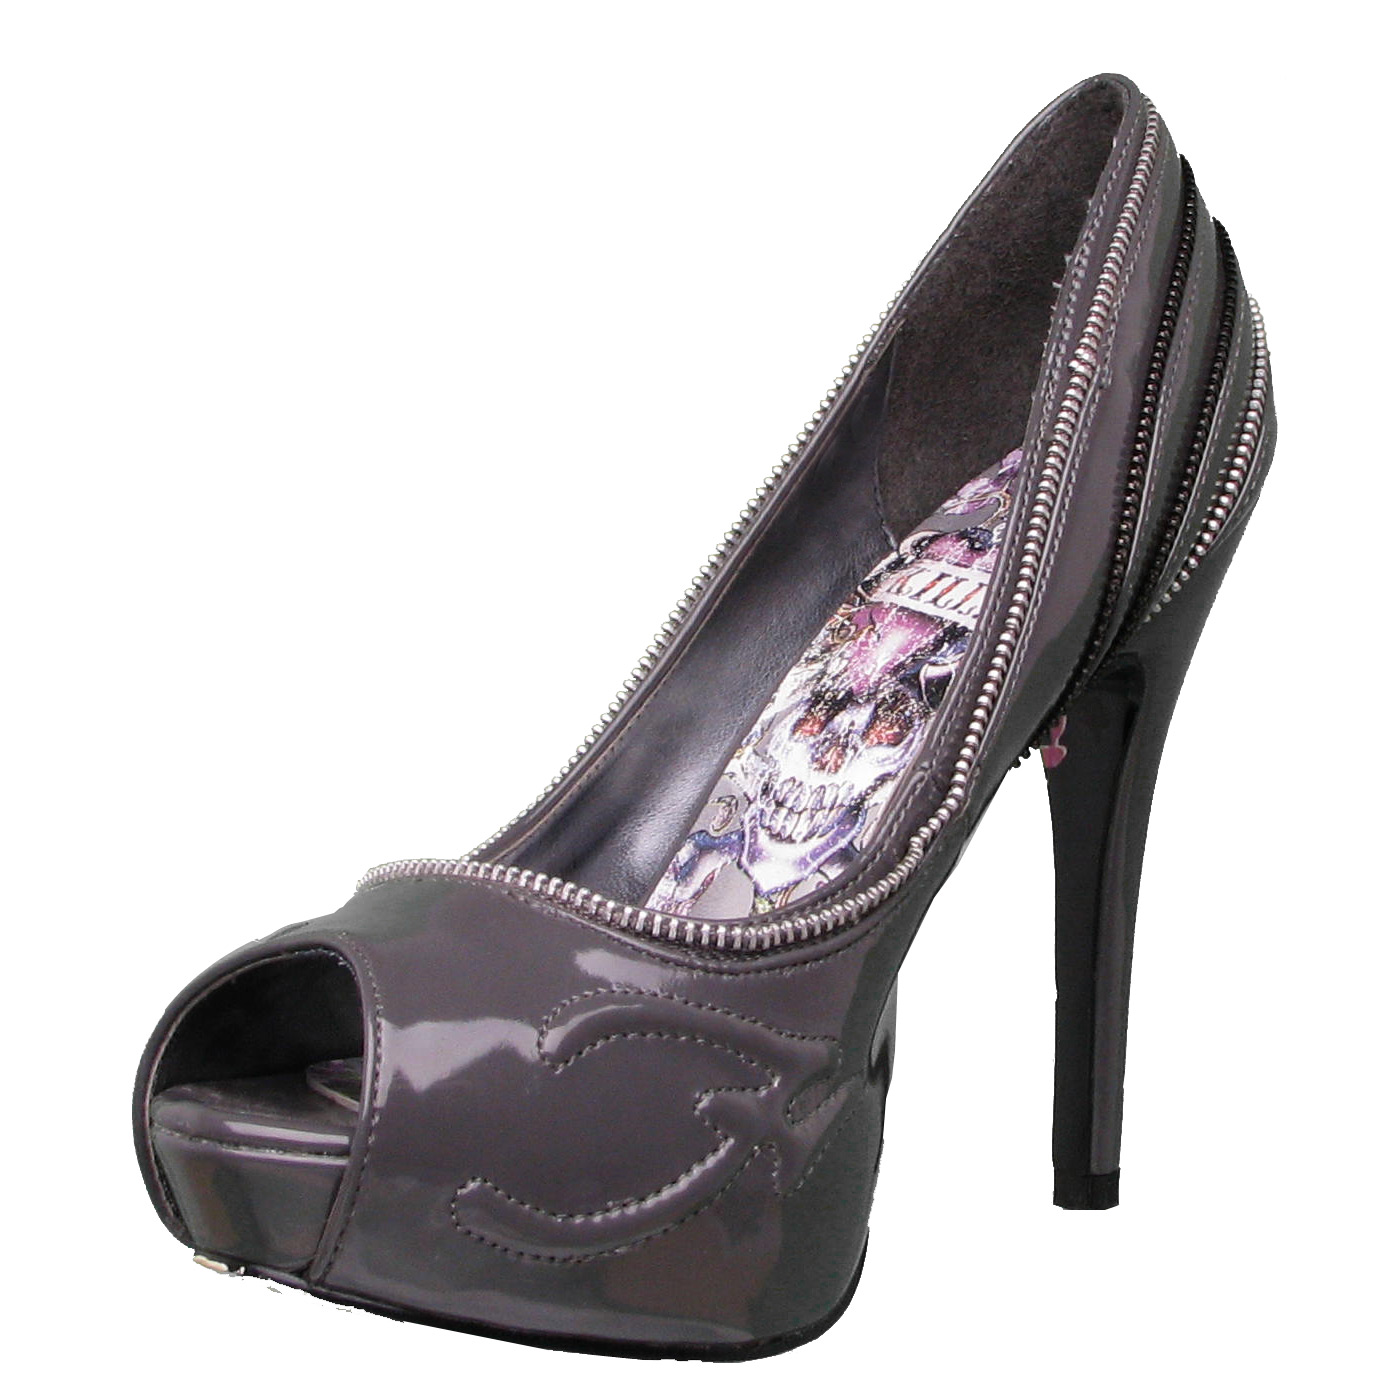 Ed Hardy Singapore Heel Shoe for Women - Grey